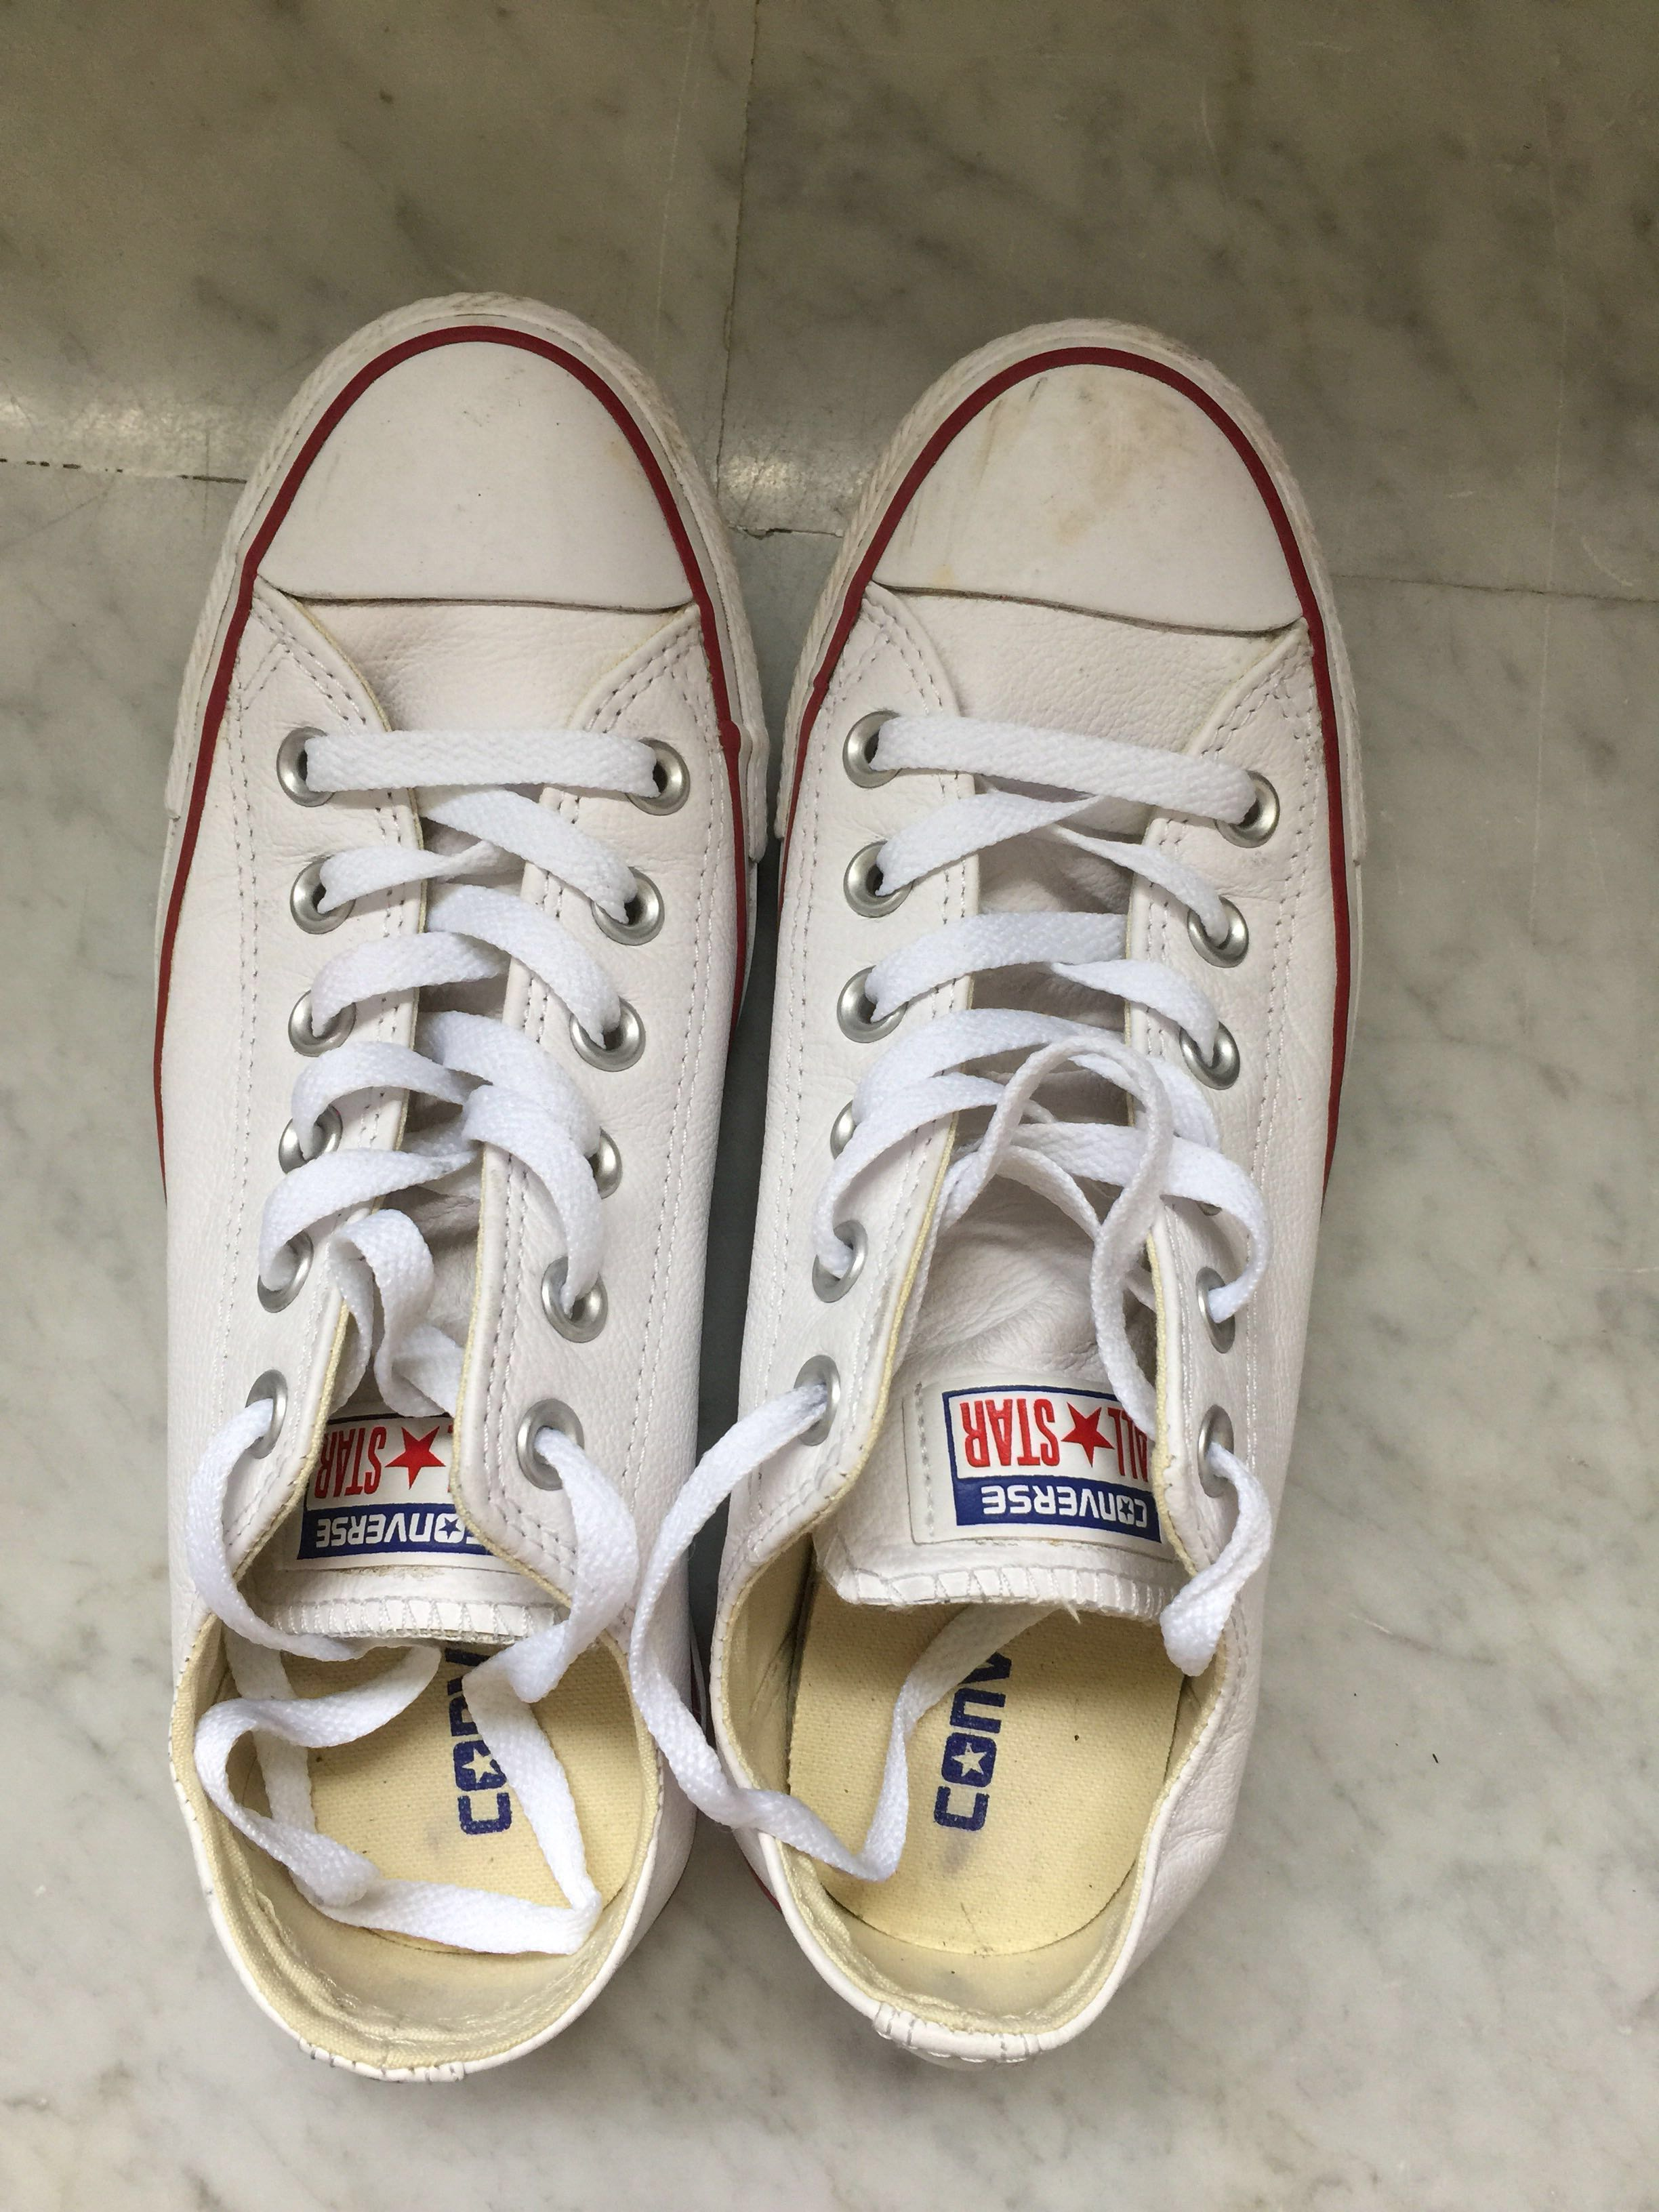 New white leather Converse CT OX all star white shoes 24cm 672664b59